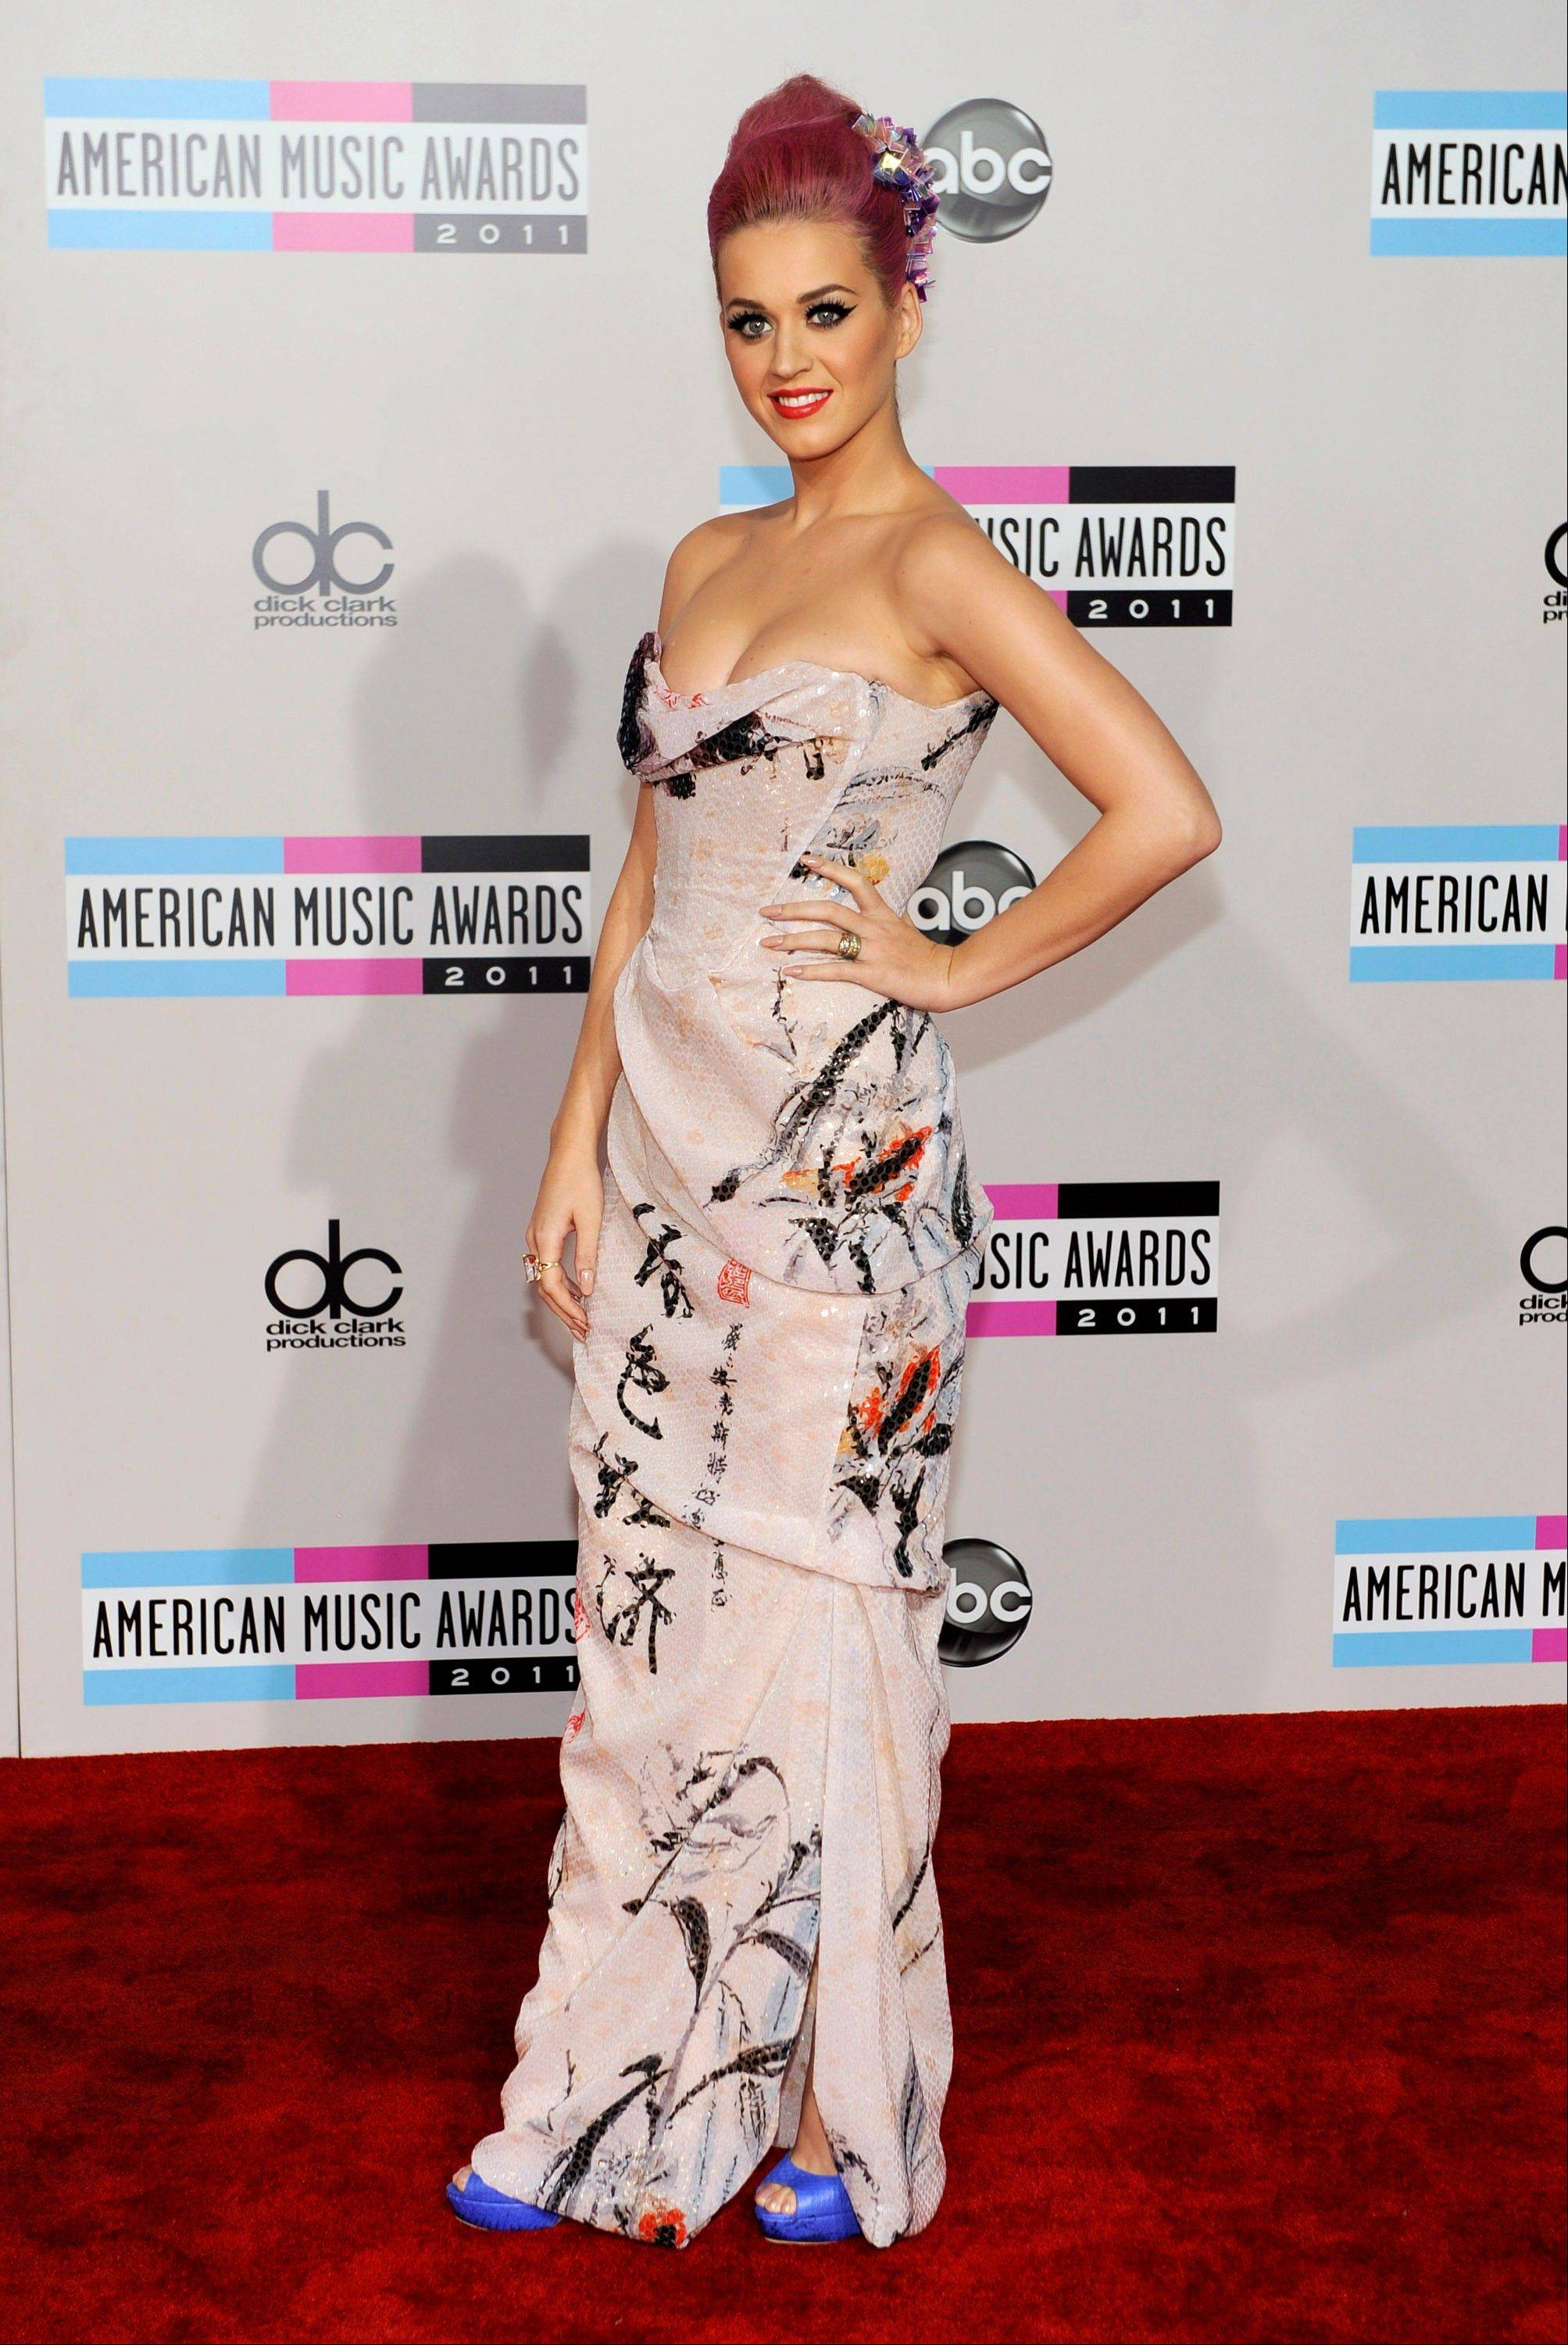 Katy Perry arrives at the 39th Annual American Music Awards on Sunday, Nov. 20, 2011 in Los Angeles.